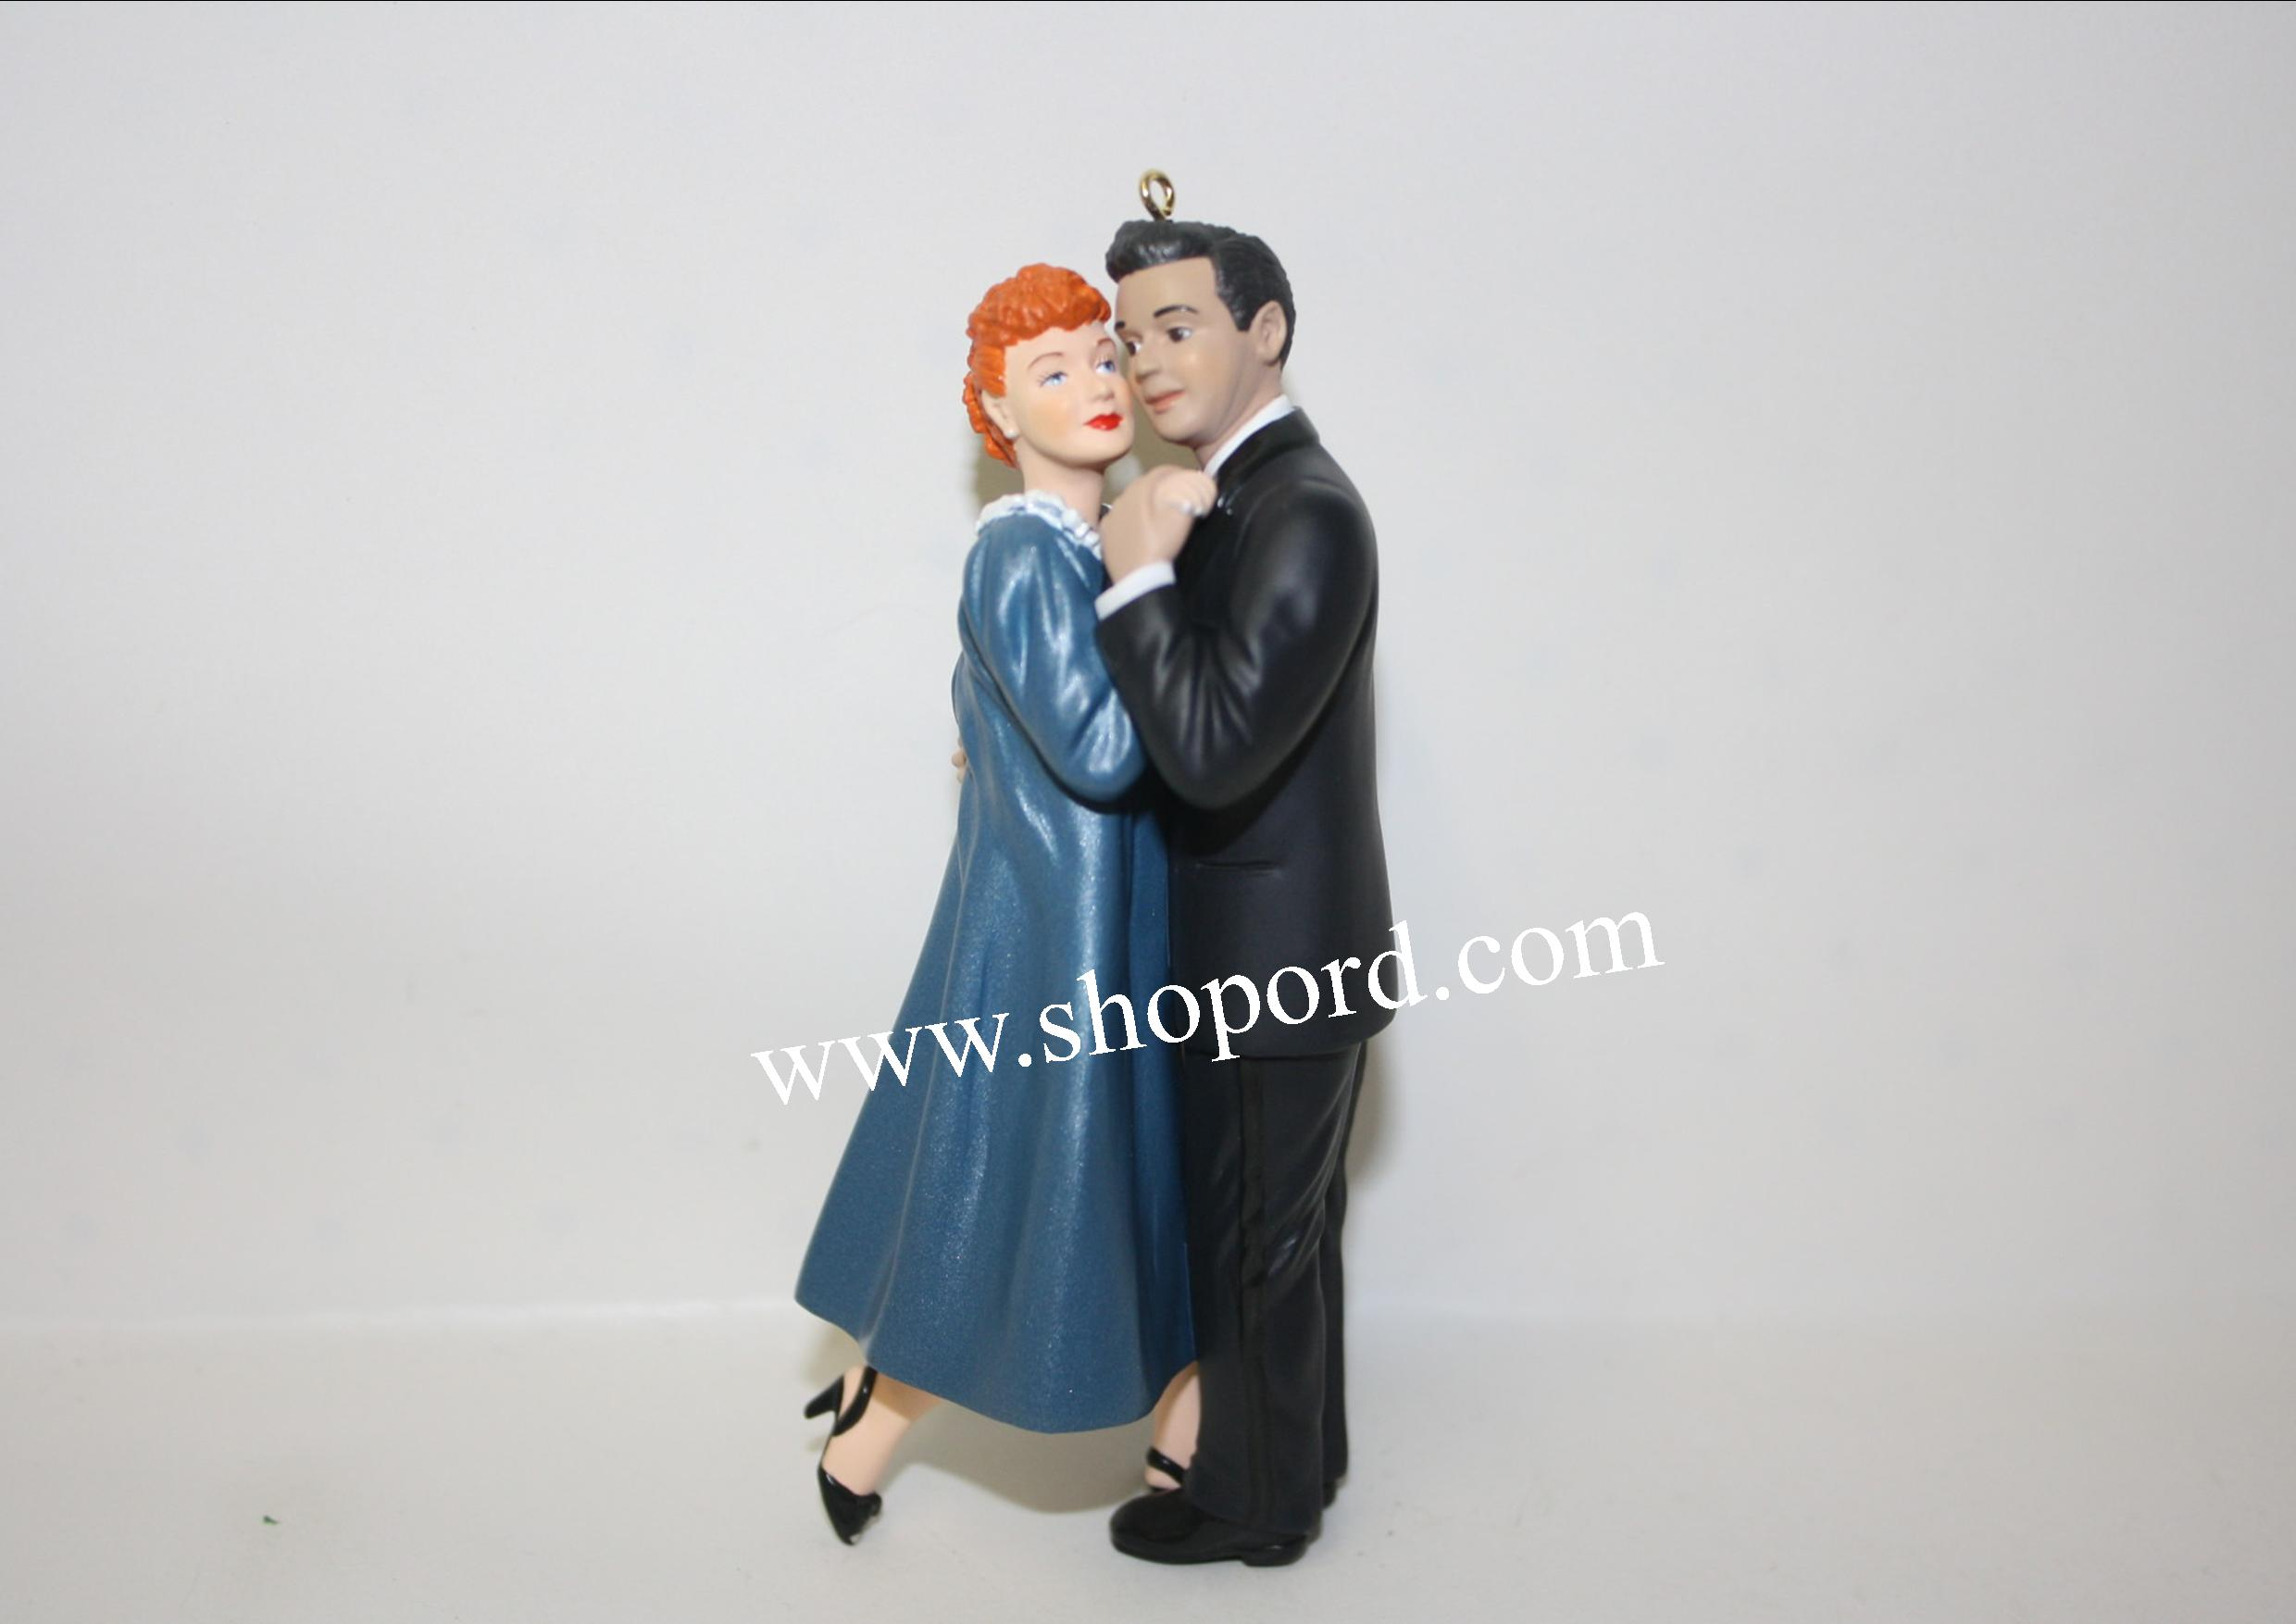 Hallmark 2000 Lucy Is Enceinte Ornament I Love Lucy QX6884